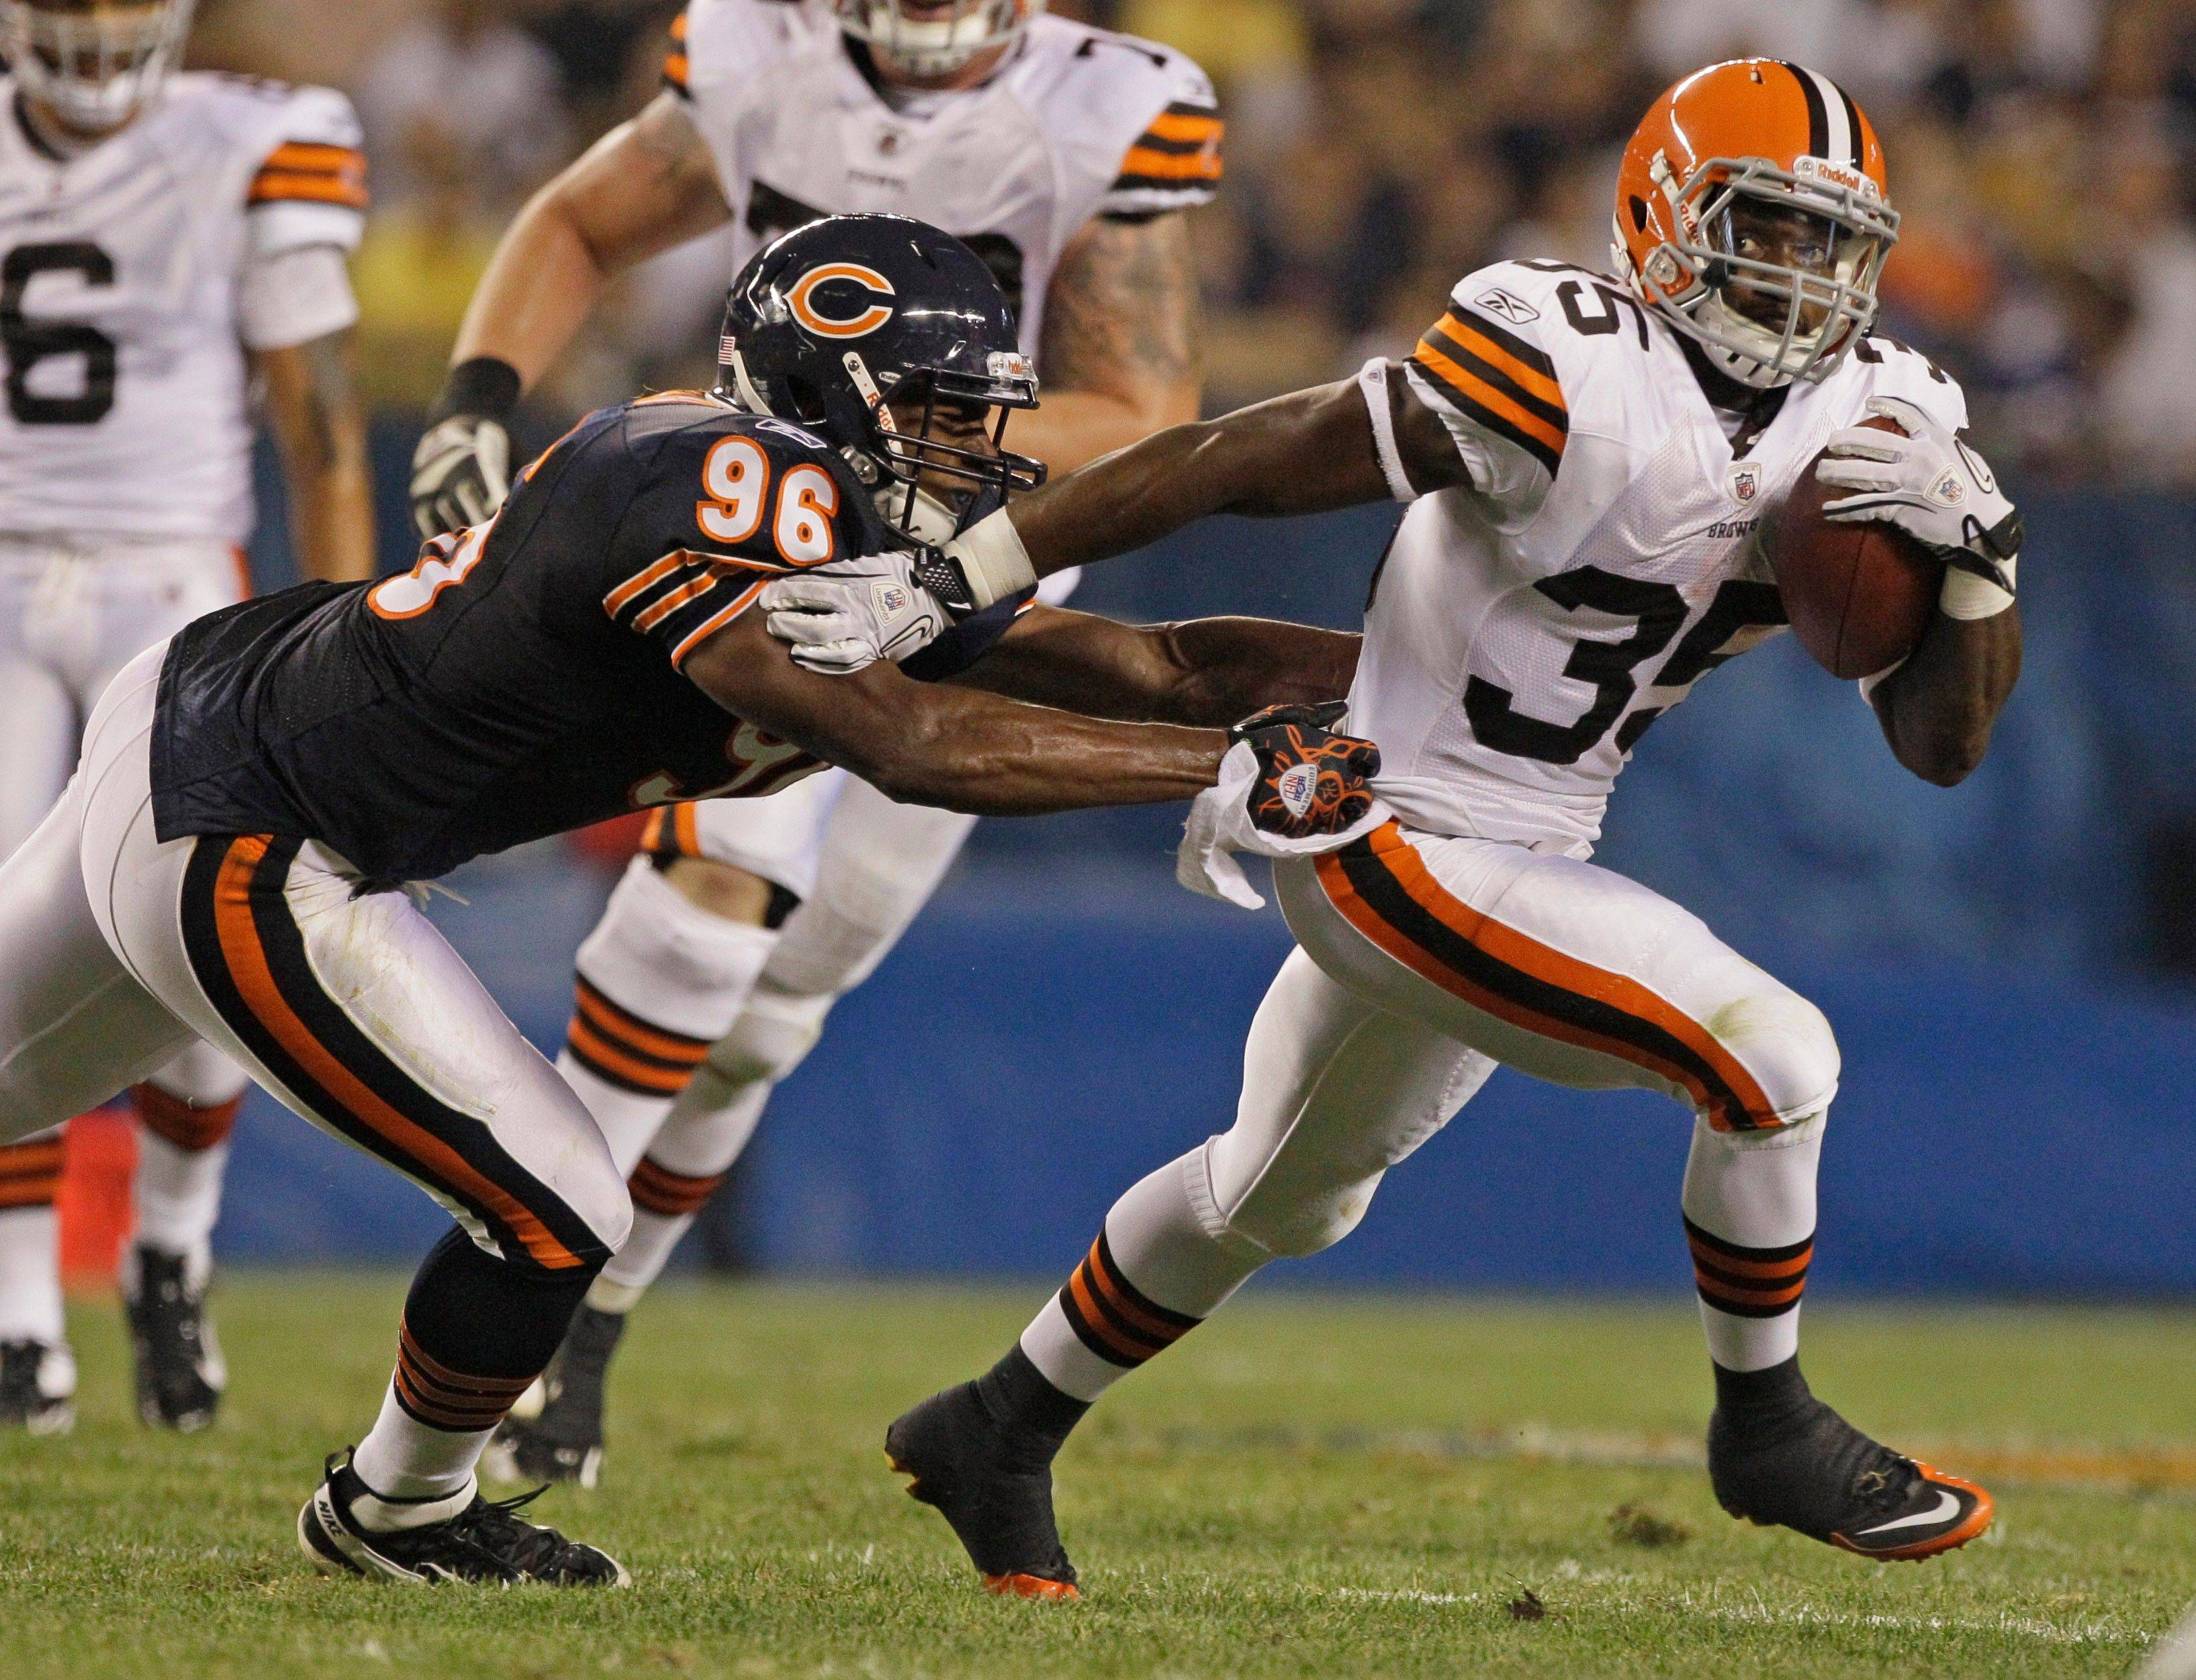 Cleveland Browns running back Armond Smith tries to break the arm tackle of Chicago Bears linebacker Patrick Trahan in the first half.